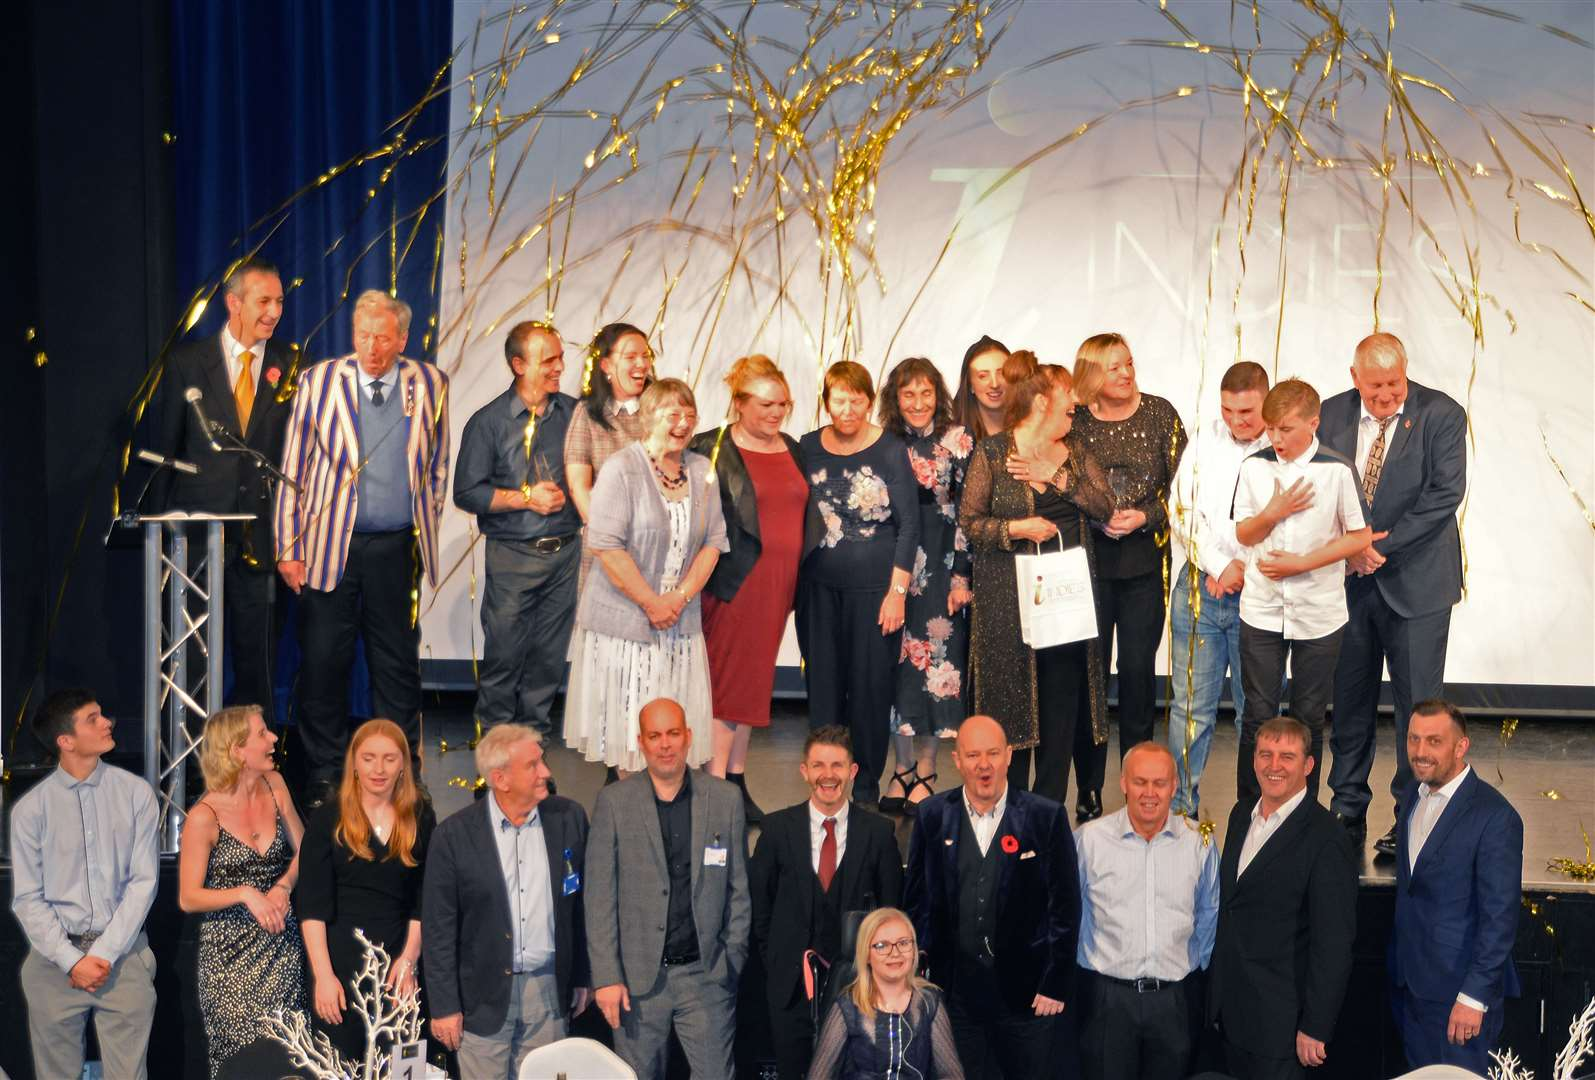 The 2019 Indies community awards winners and Highly Commended recipients at South Mill Arts (52125243)